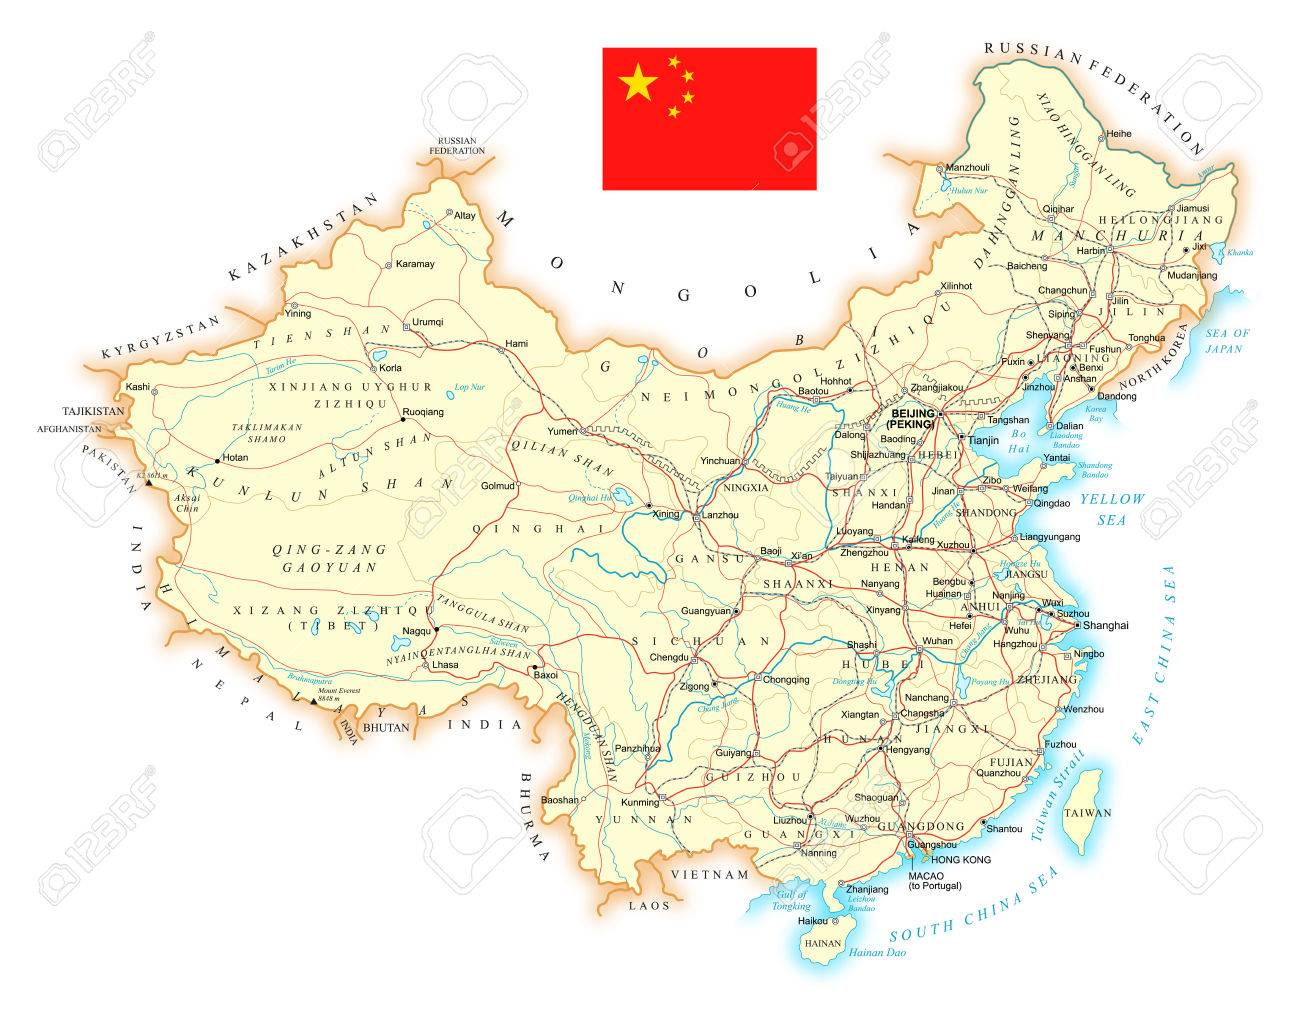 China large detailed road topographic map vector illustration china large detailed road topographic map vector illustration banque dimages gumiabroncs Images